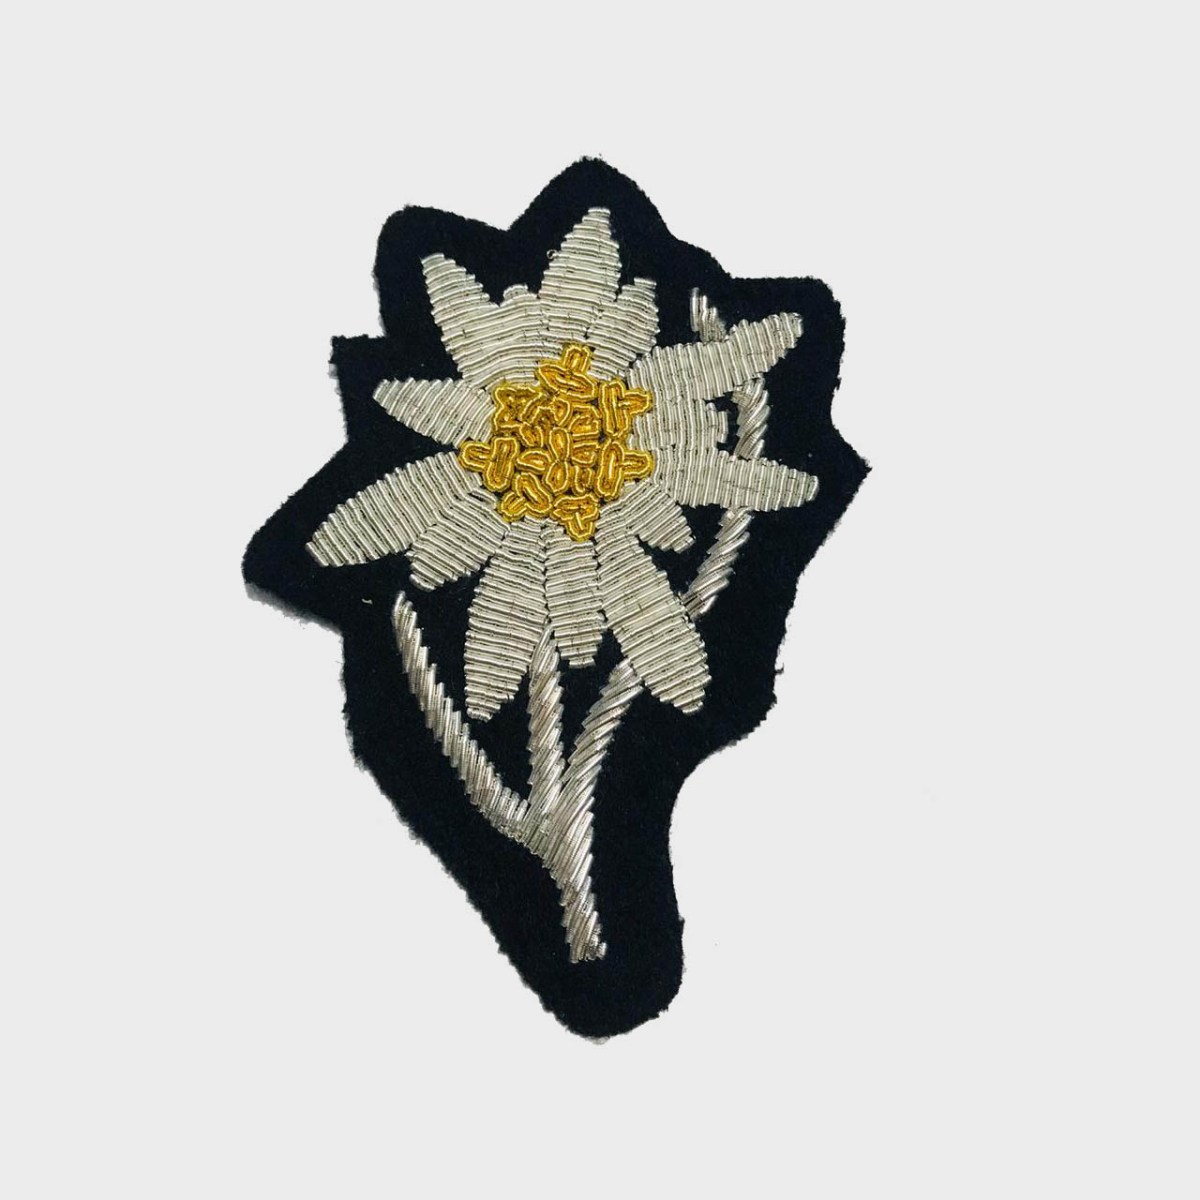 Edelweiss Flower Bullion Embroidered Badge , Sew-on Applique Patch - Edelweiss EmbroideredPatch Size # 3inches Sew-on backing Silverbullion wires embroidered on felt  2